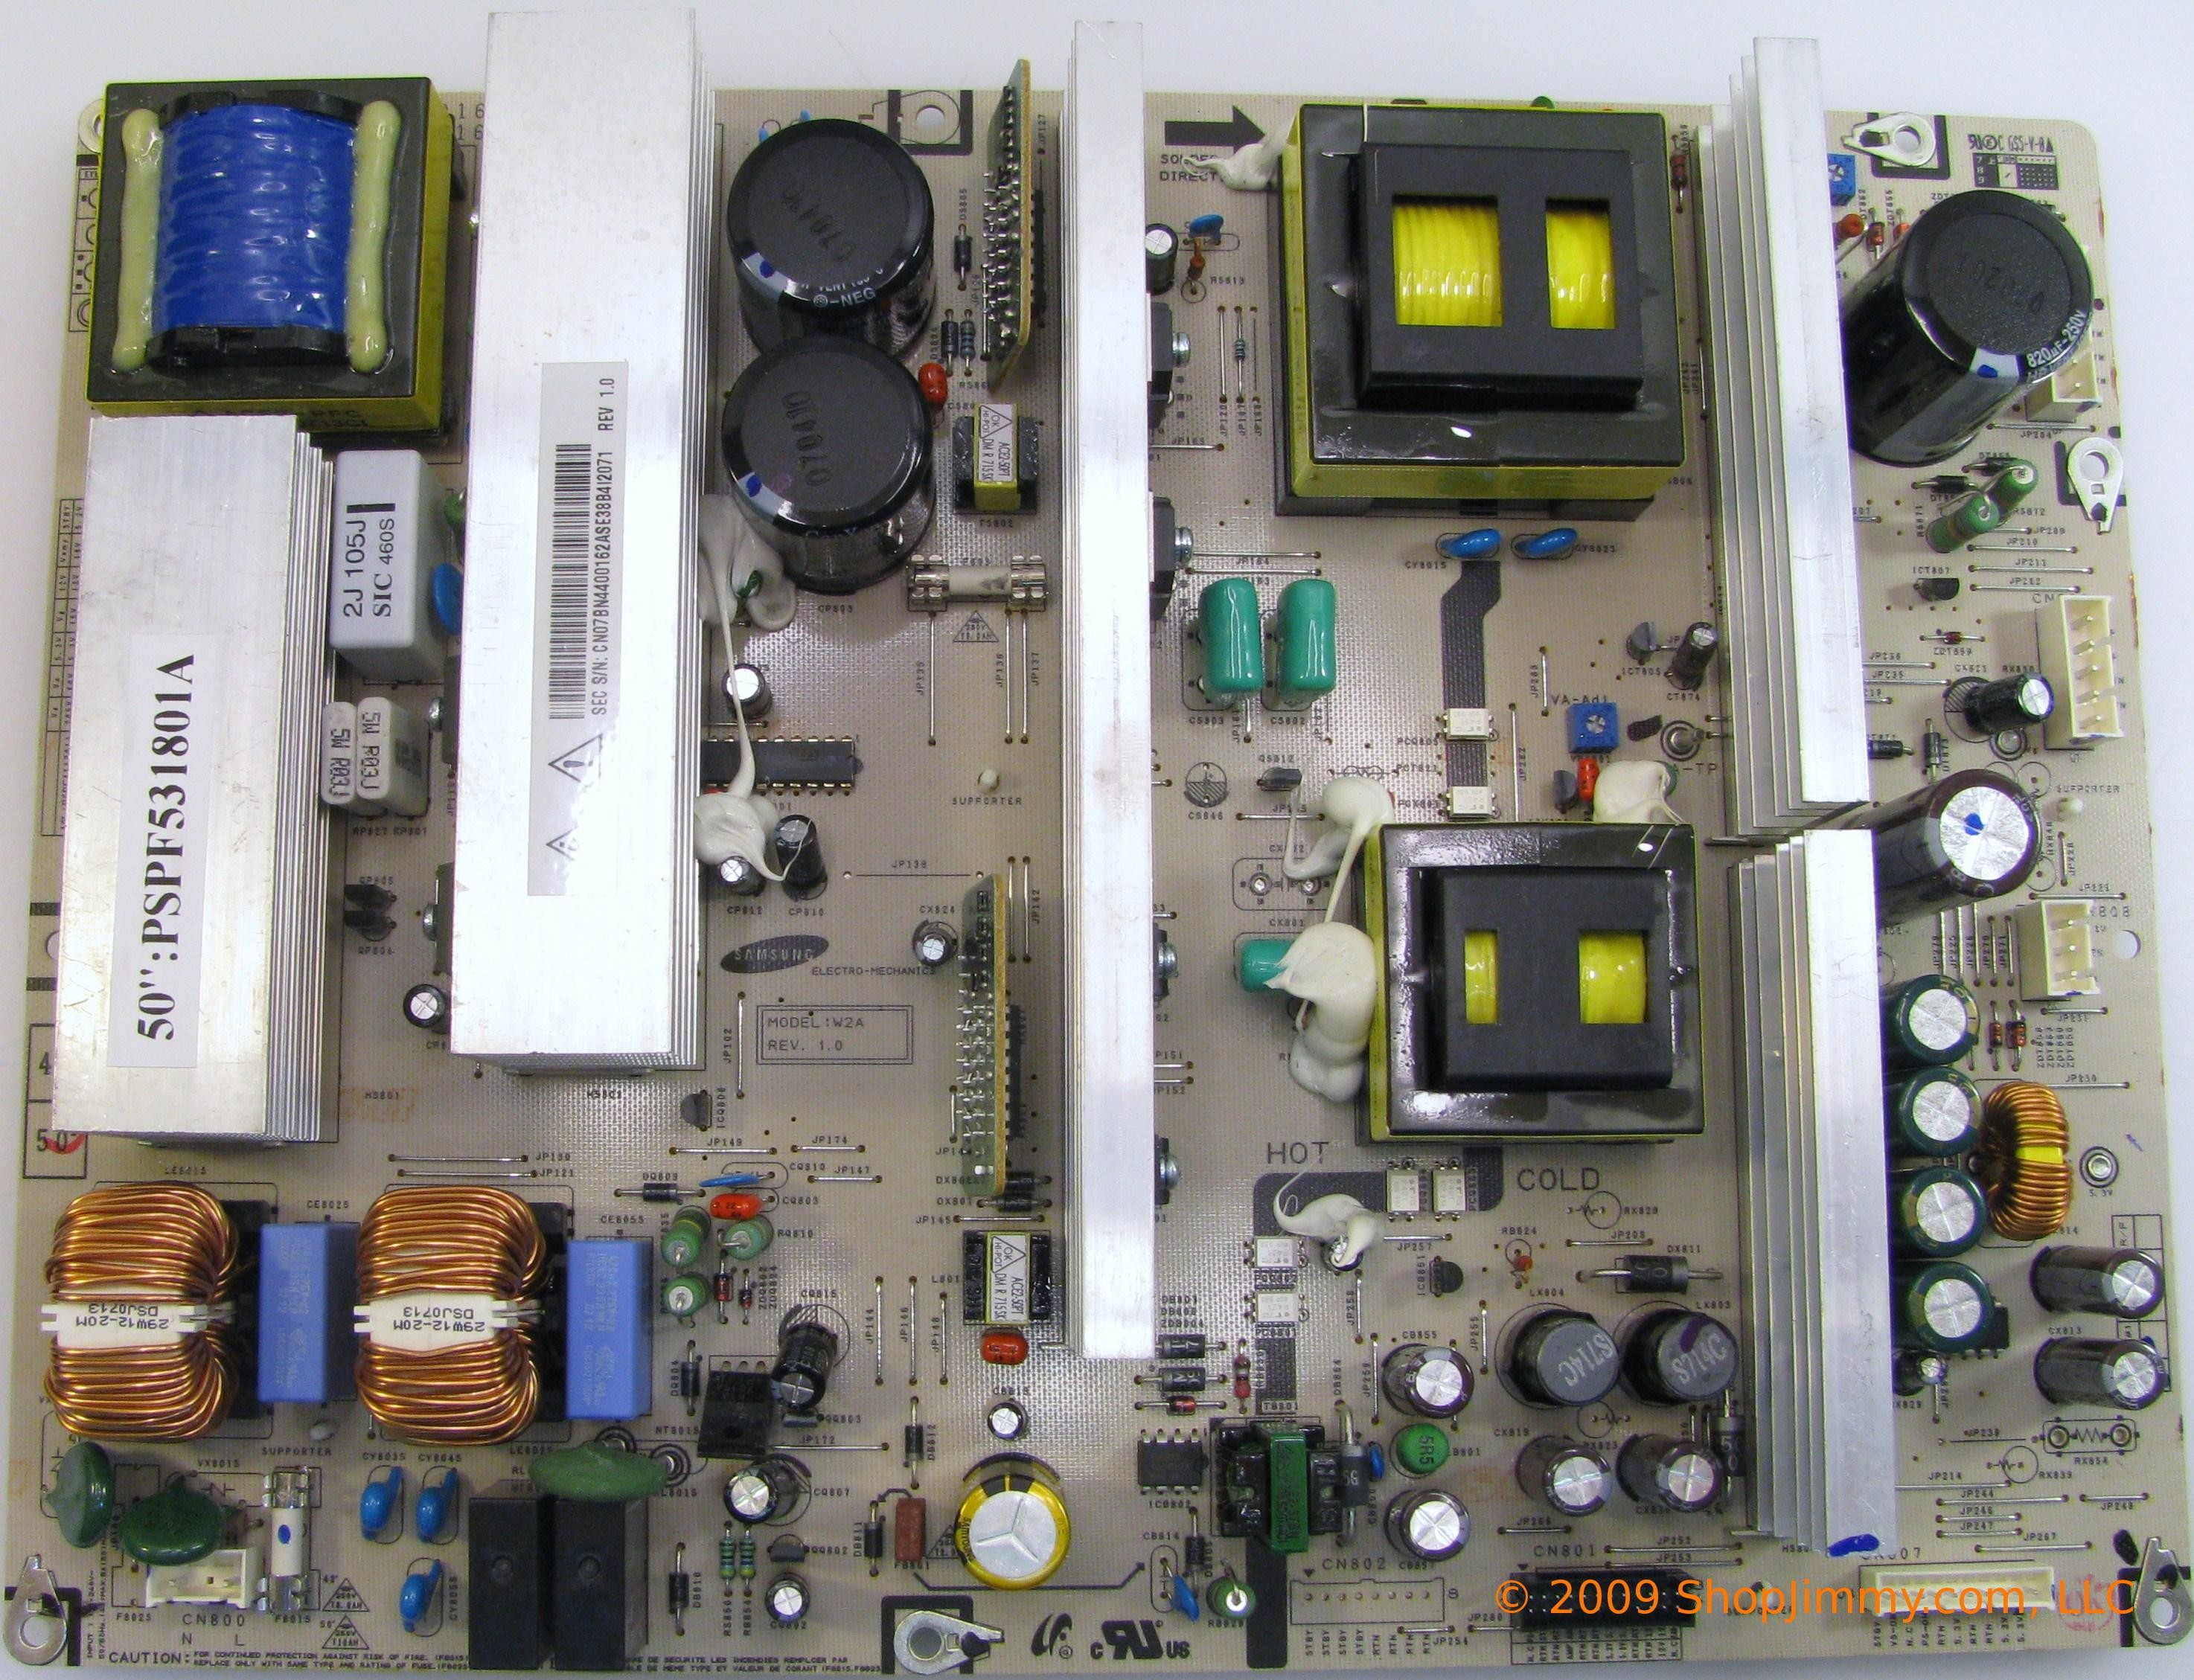 BN44-00162A PSPF531801A 50-inch plasma power supply board